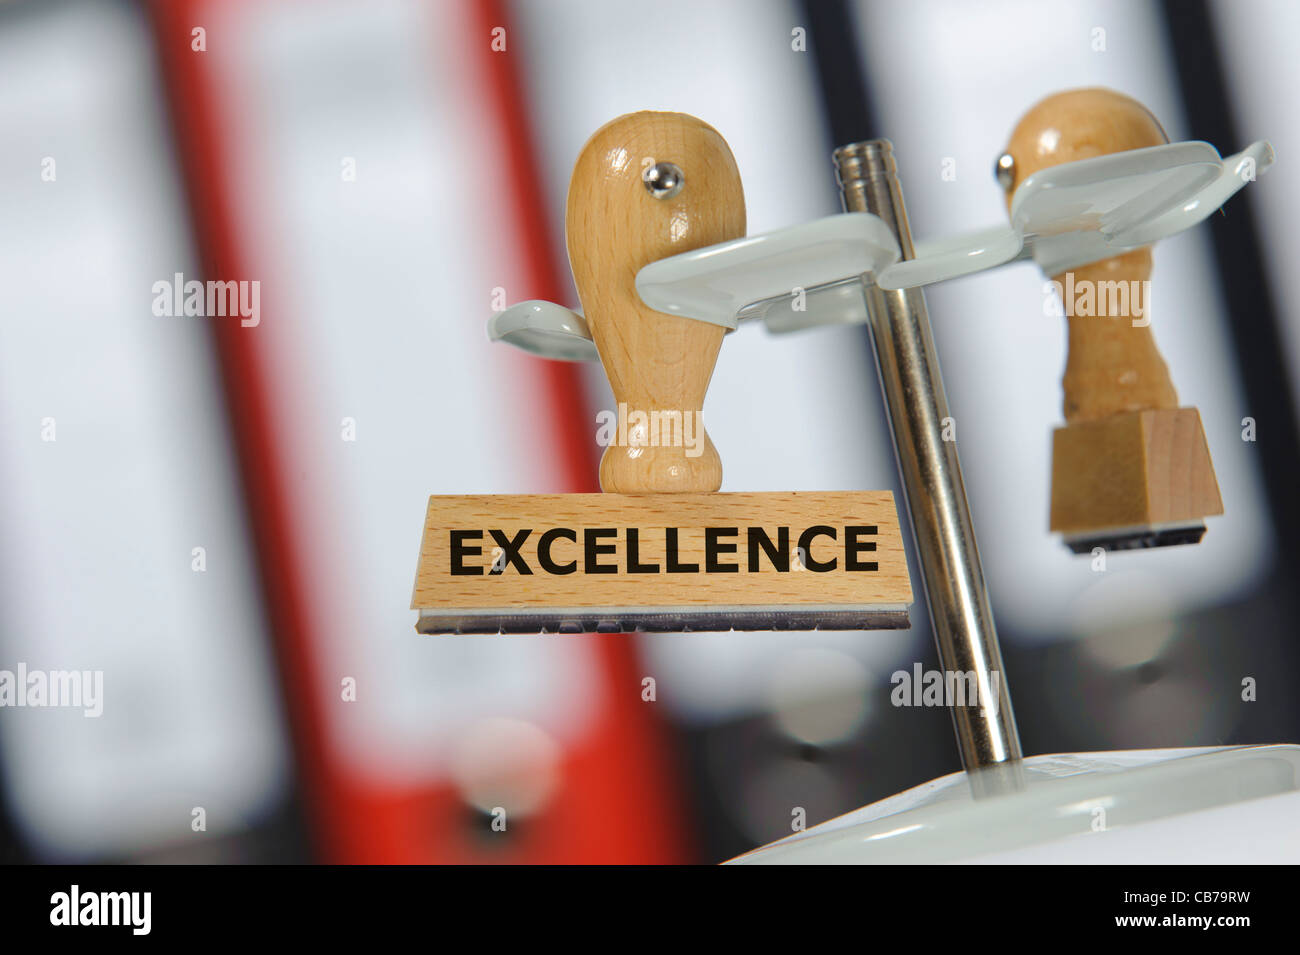 rubber stamp marked with EXCELLENCE - Stock Image